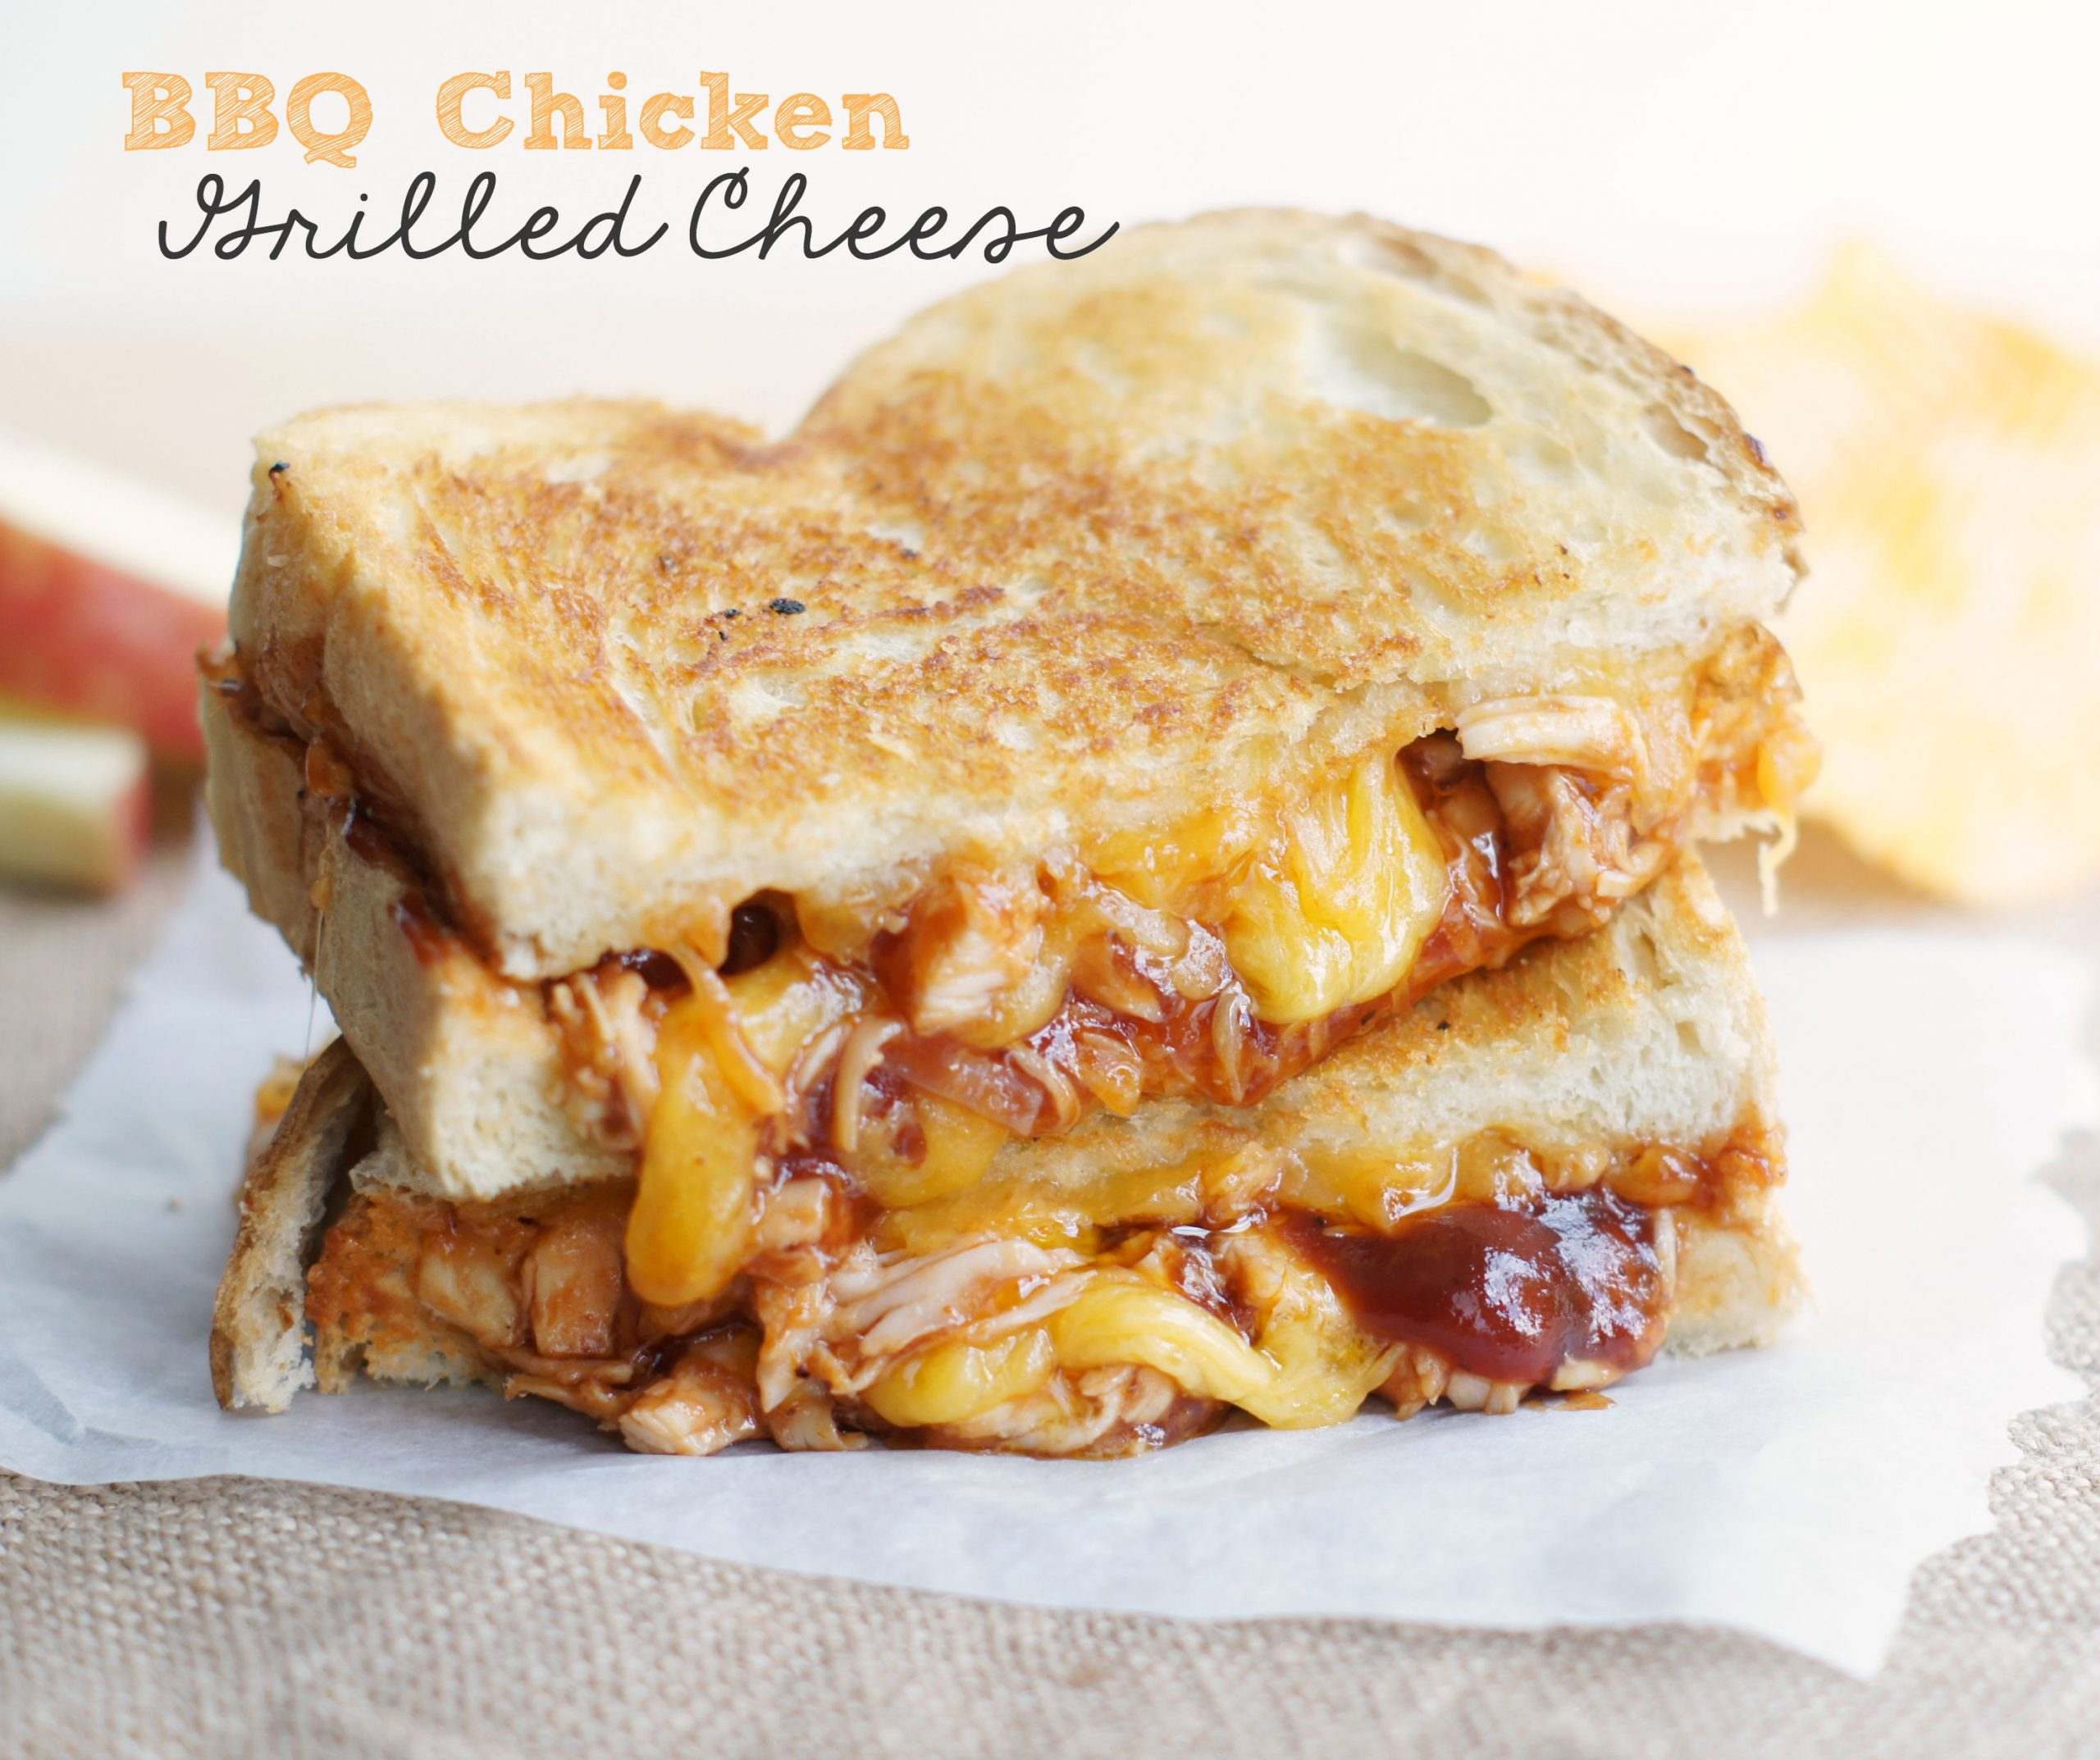 Bbq Chicken Grilled Cheese 5 Boys Baker